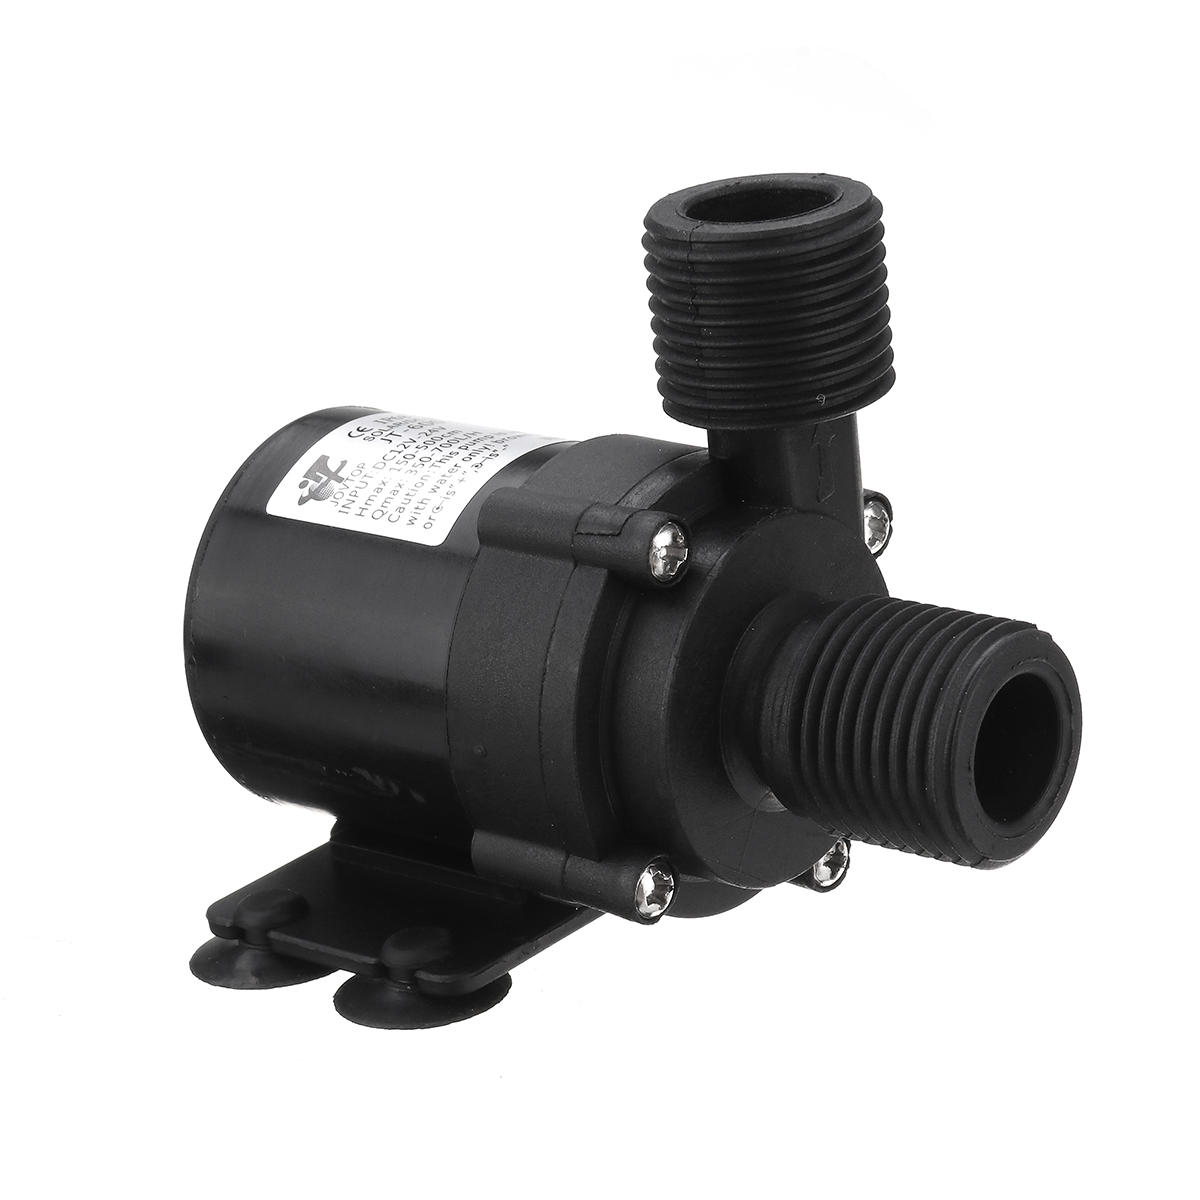 24V/12V Hot Water Pump for Circulating Micro DC Water Pump With 1/2 Inch Threaded Multifunction Brushless Quiet Submersi